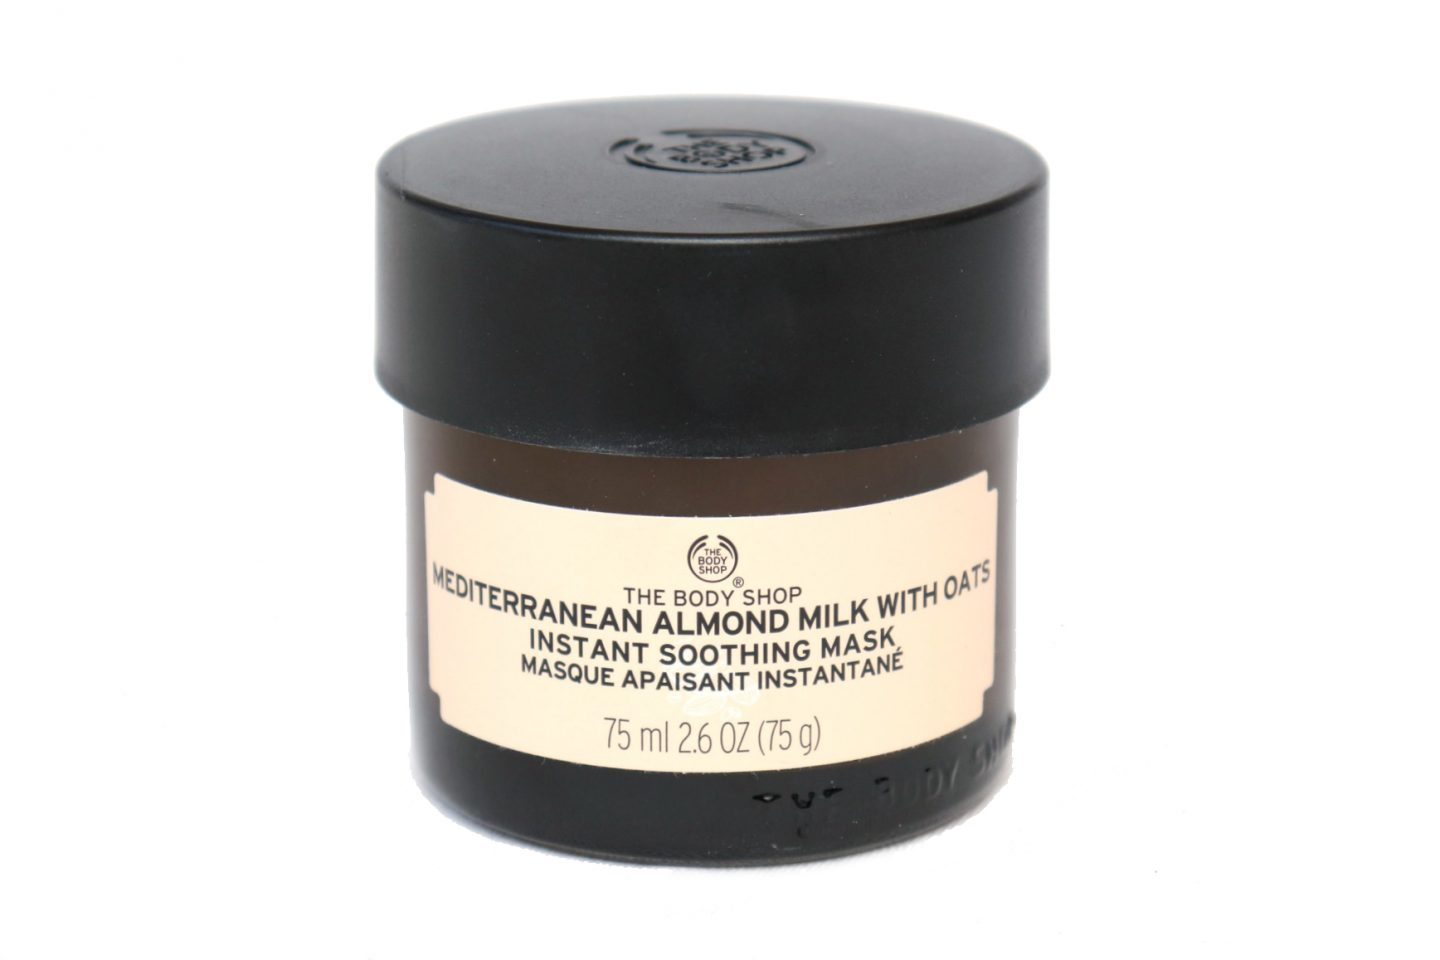 The Body Shop Mediterranean Almond Milk With Oats Instant Soothing Mask Review